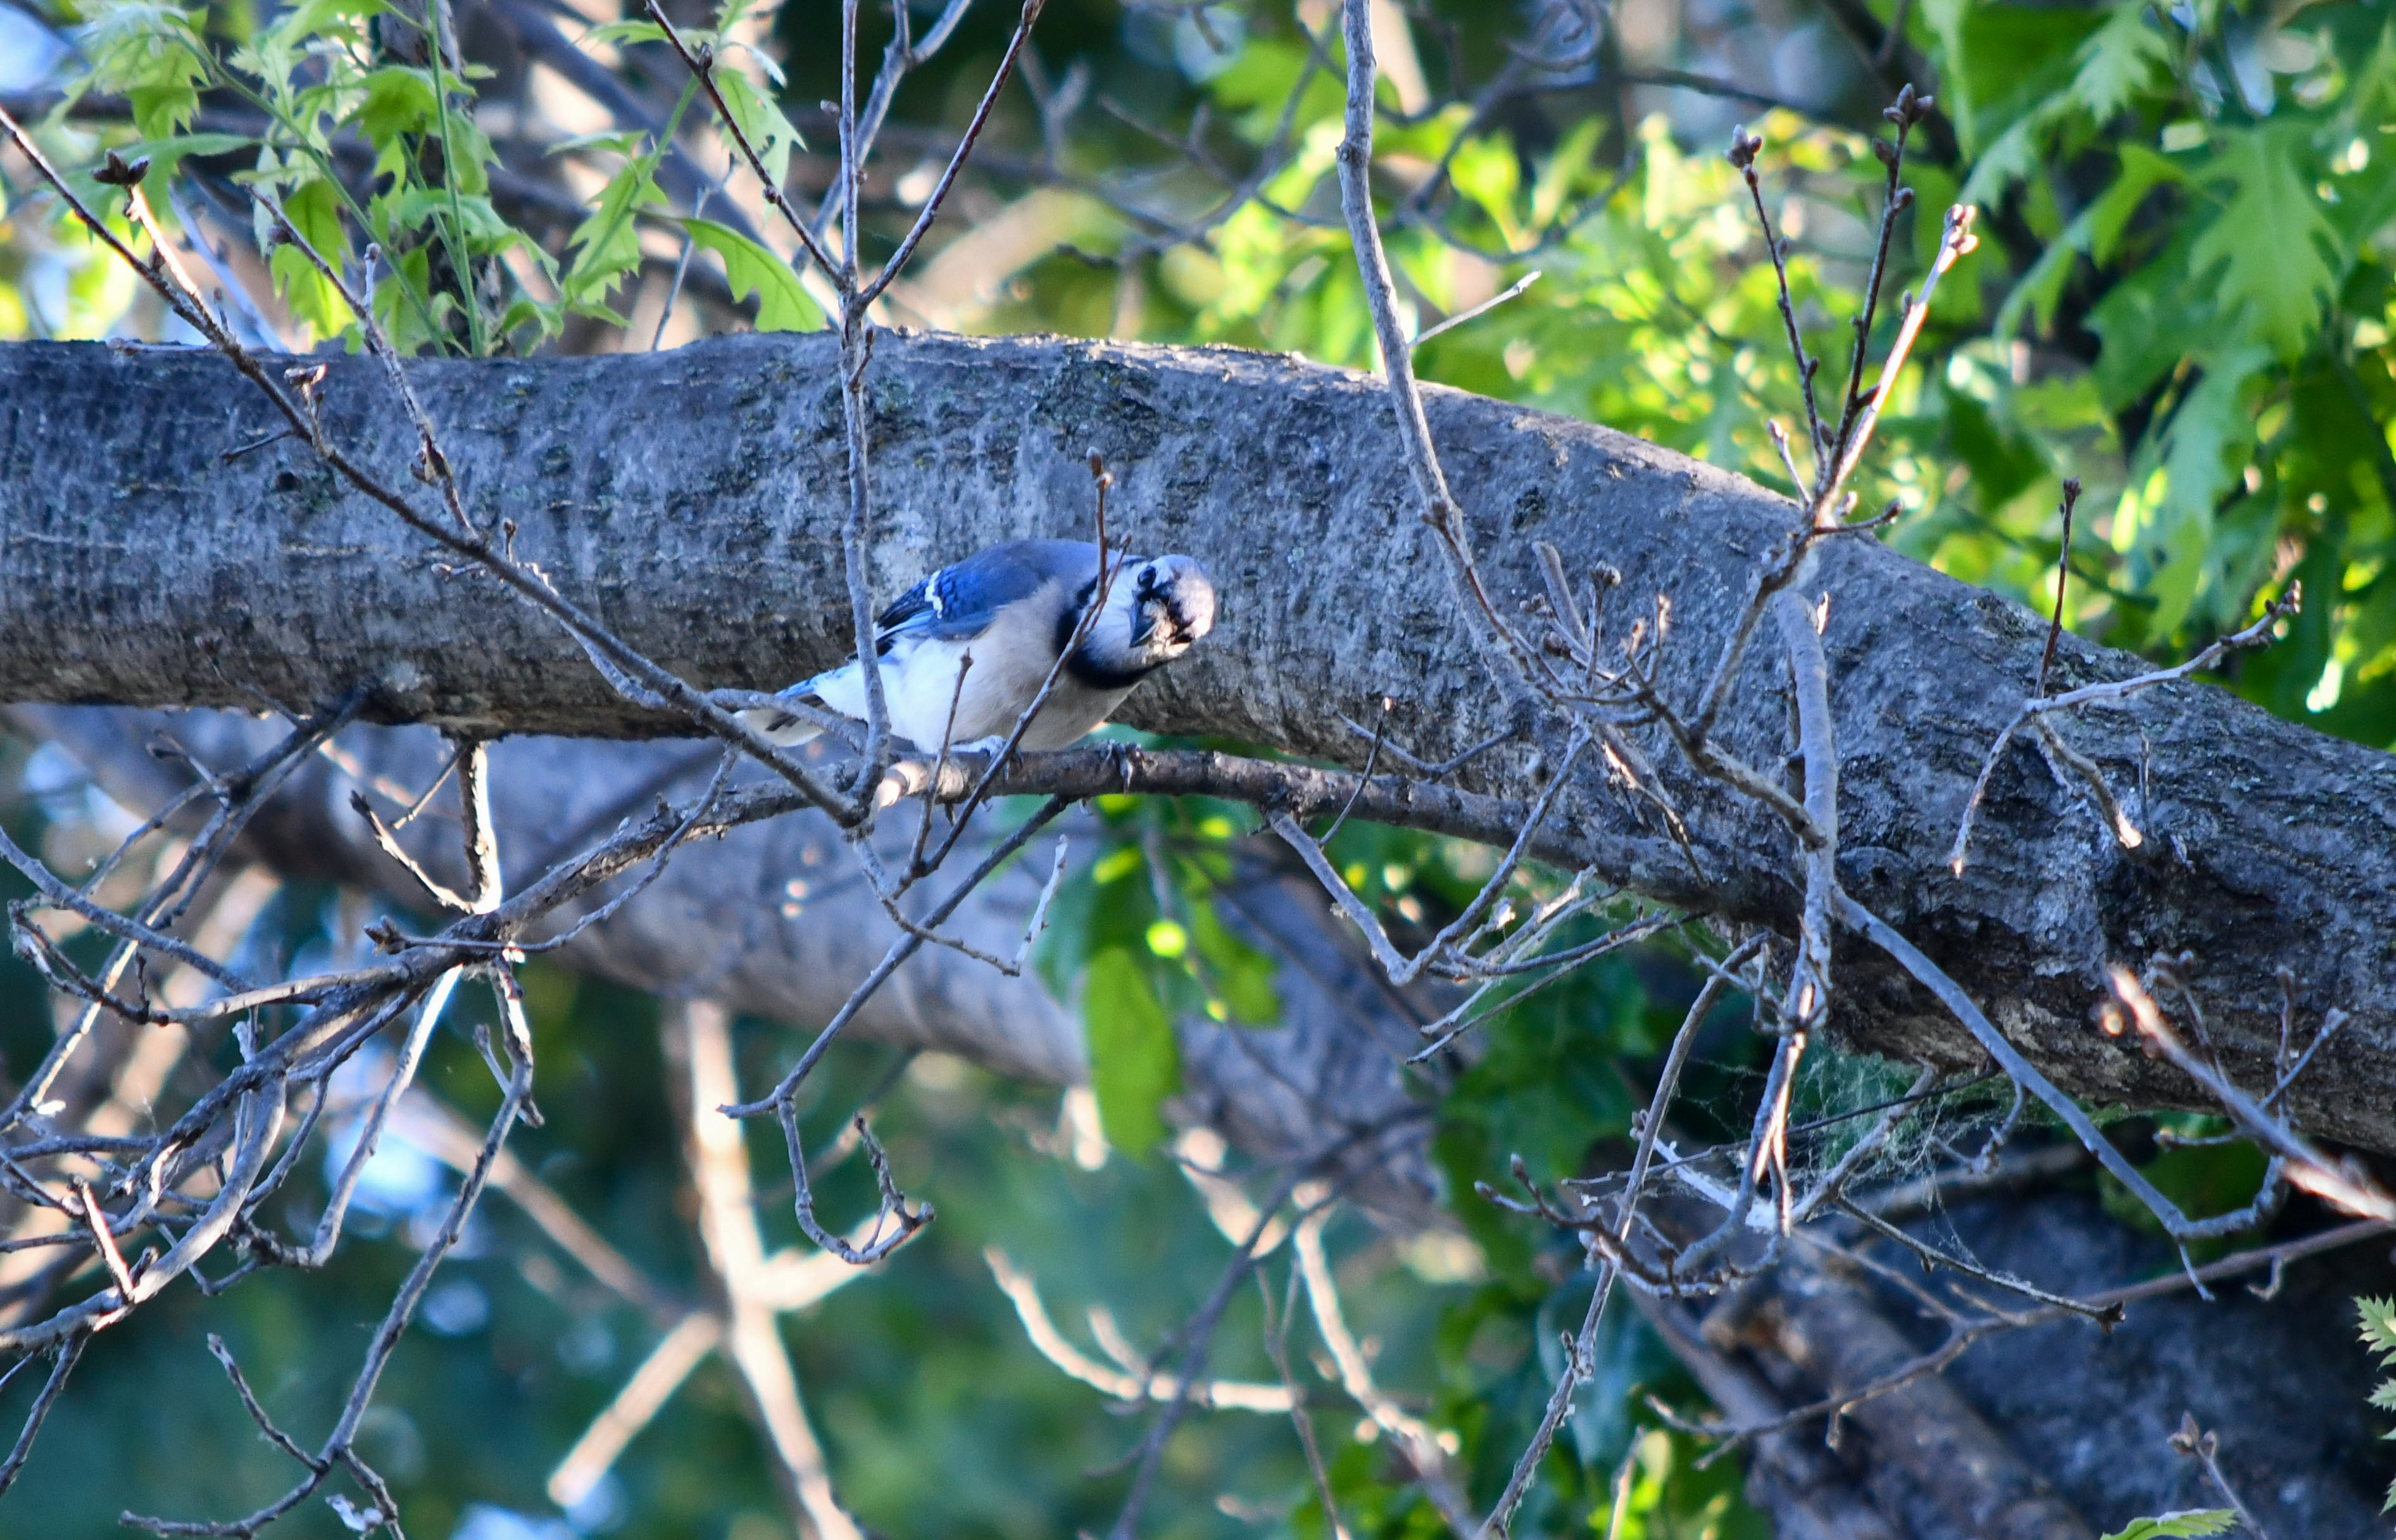 This bluejay had just startled a hawk in the tree next door. Now, he's just trying to peek at me from arounda  twig.